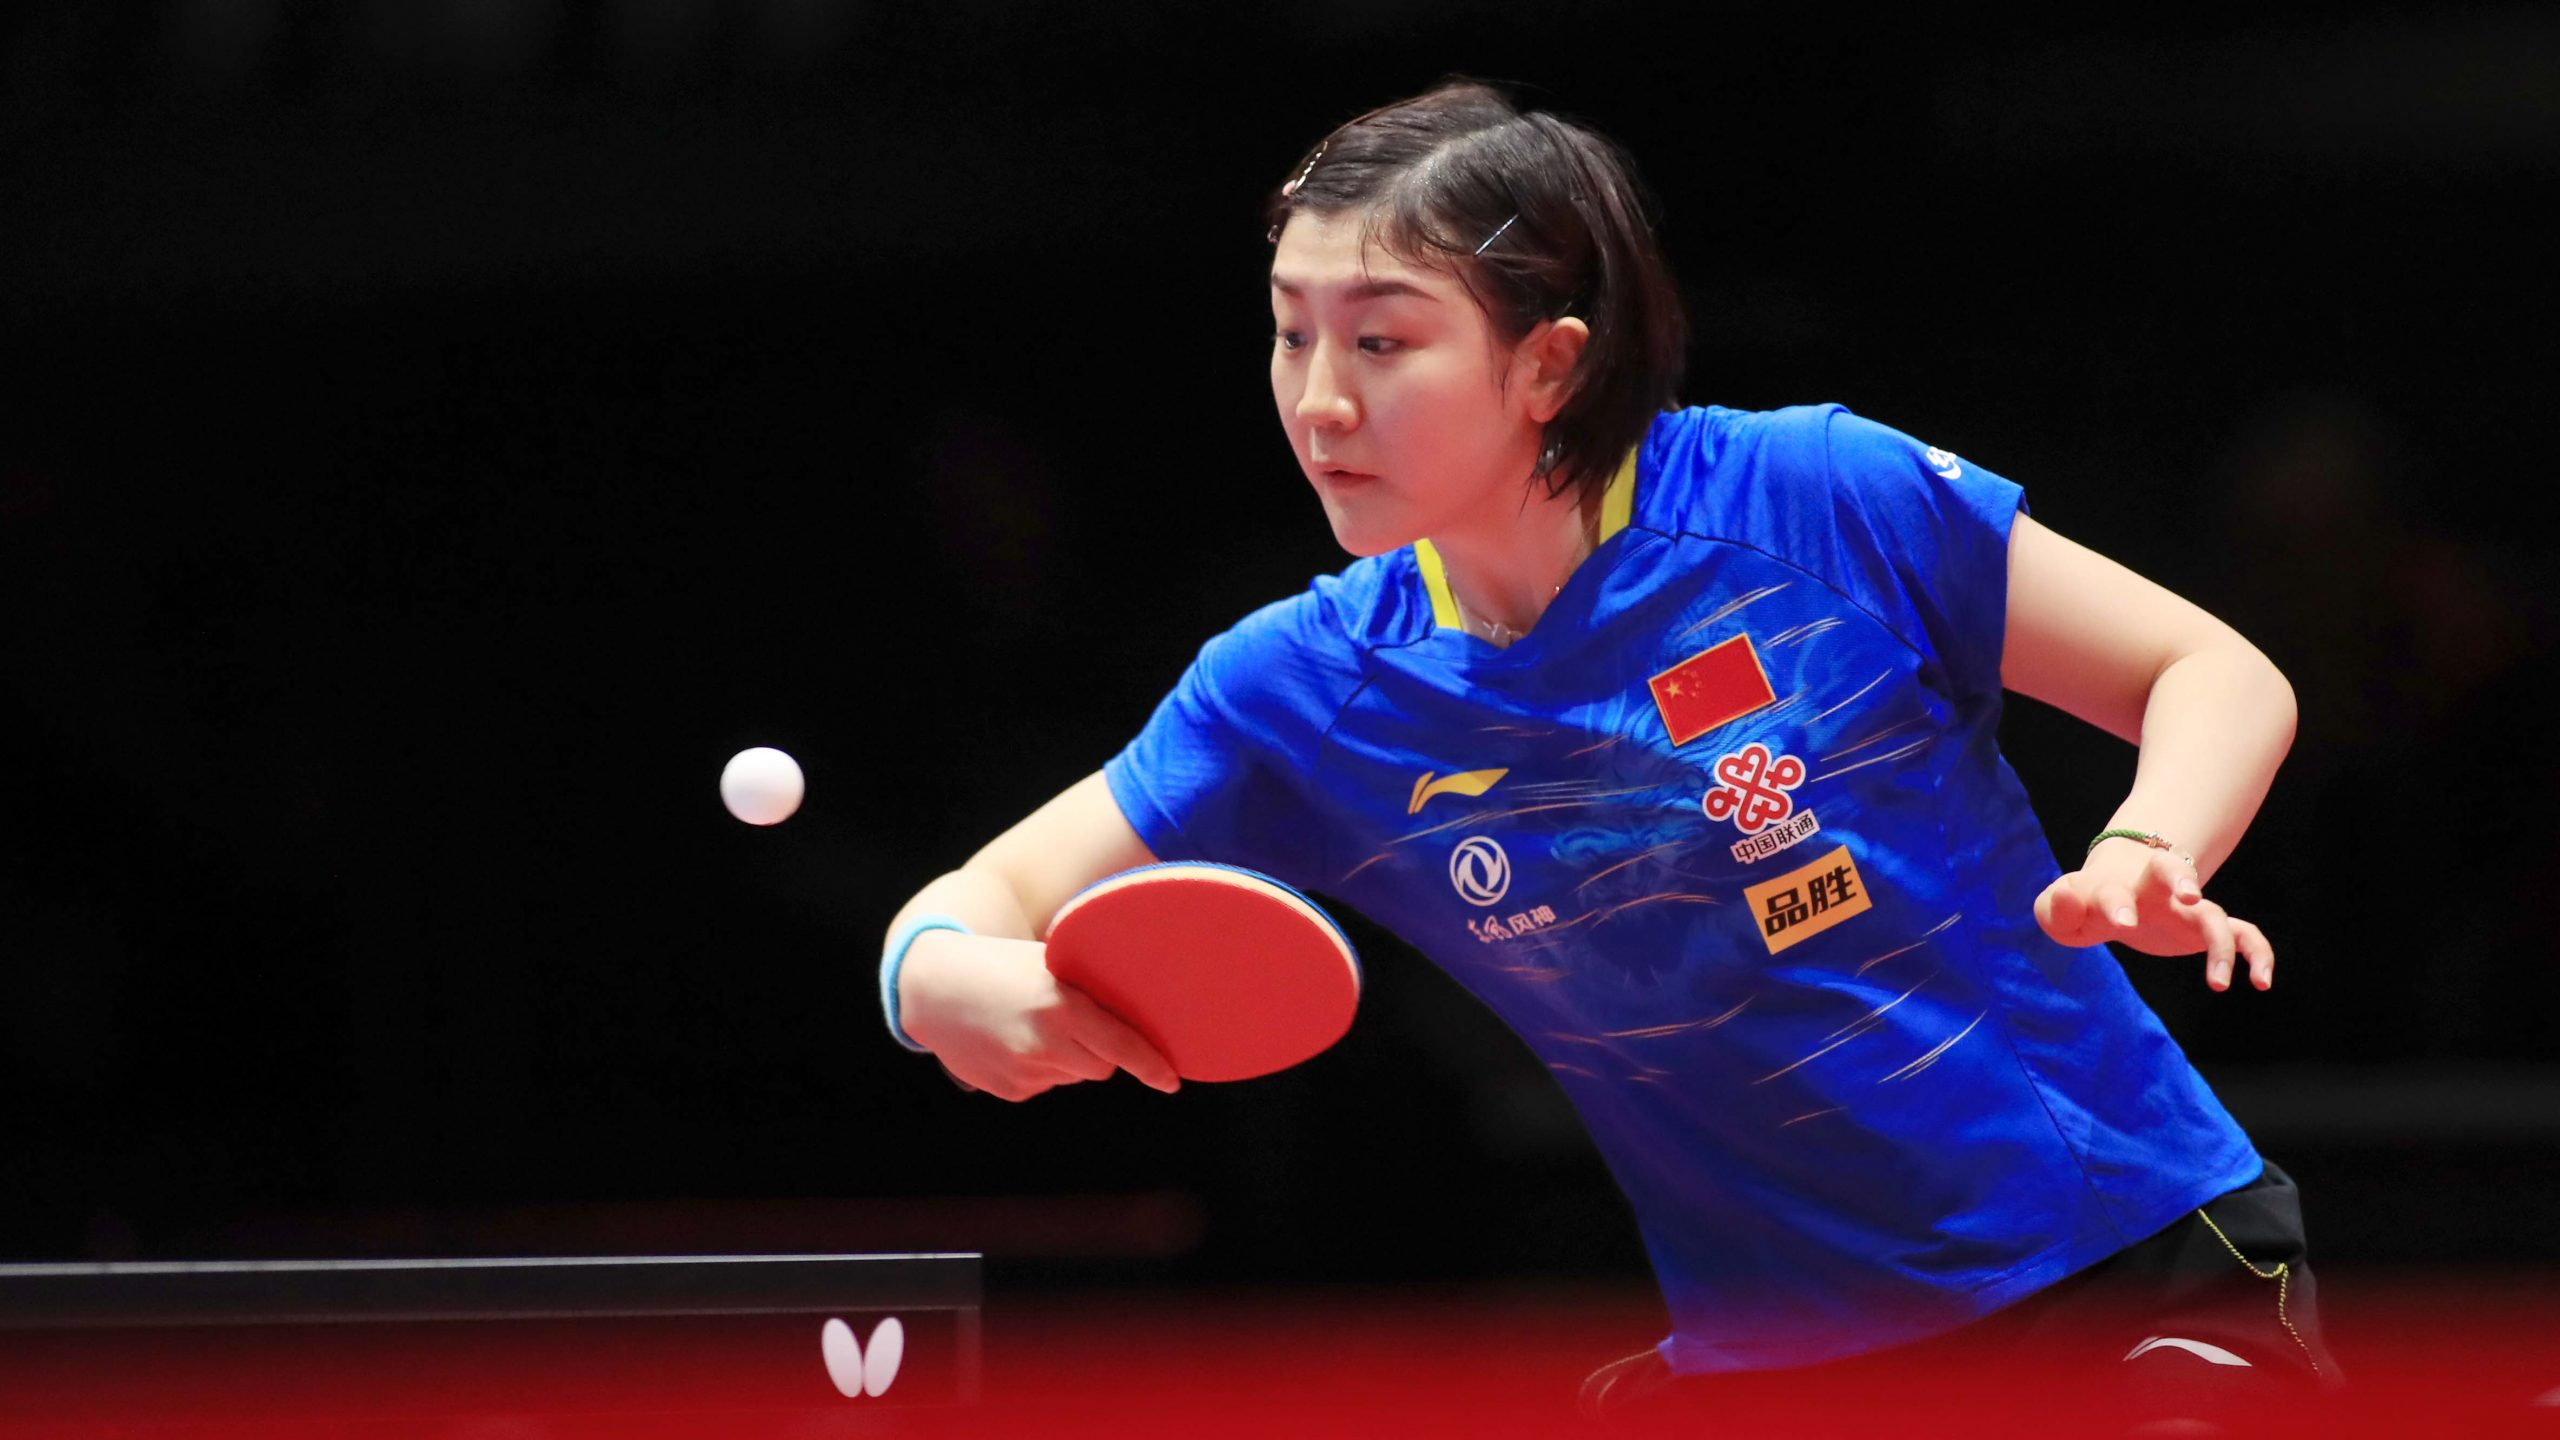 At the pinnacle of her career, is Tokyo the perfect time for Chen Meng?